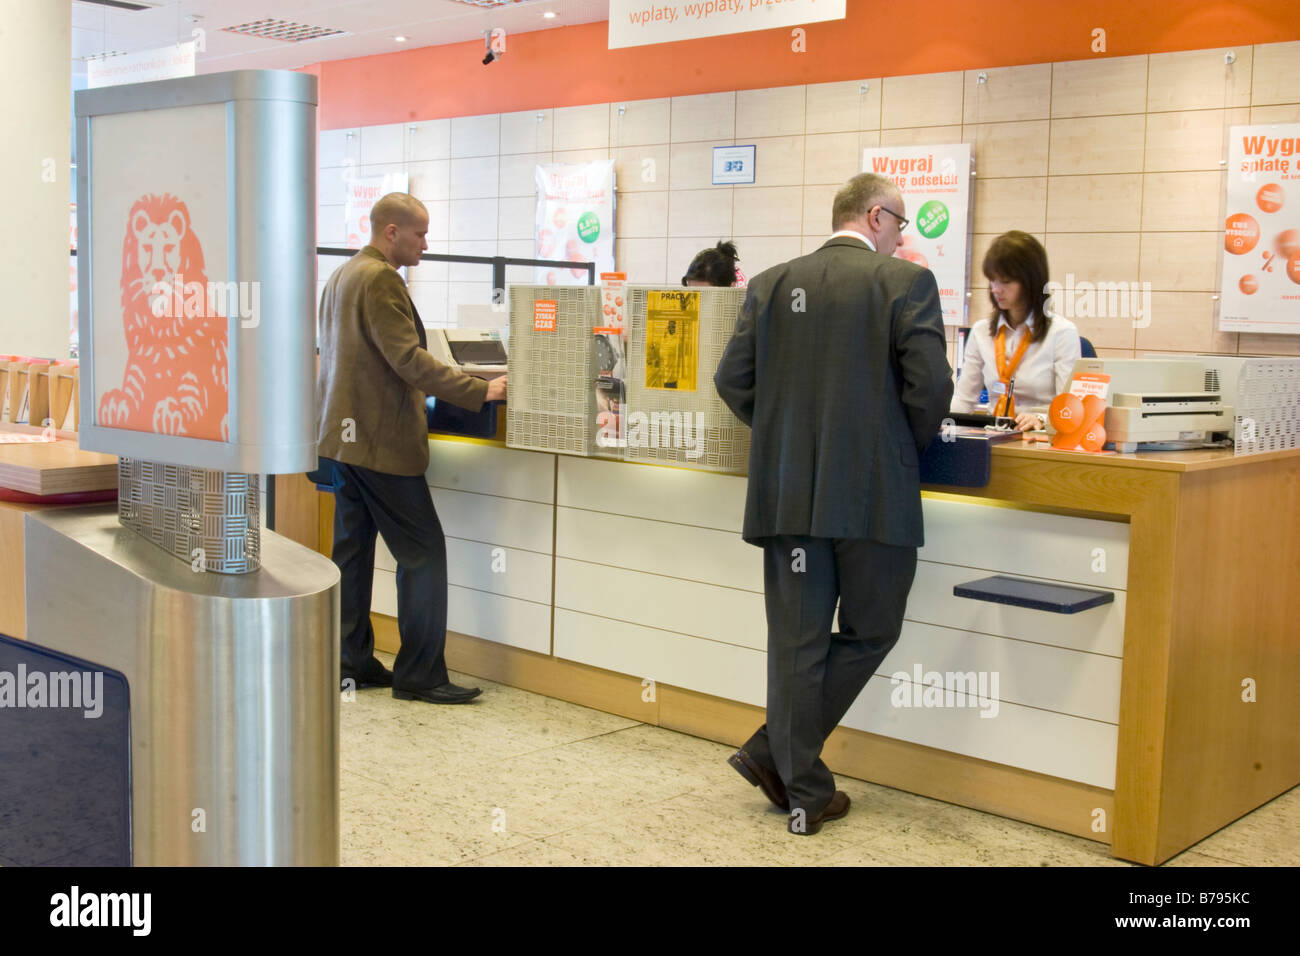 https://c8.alamy.com/comp/B795KC/costumers-inside-ing-bank-poland-B795KC.jpg